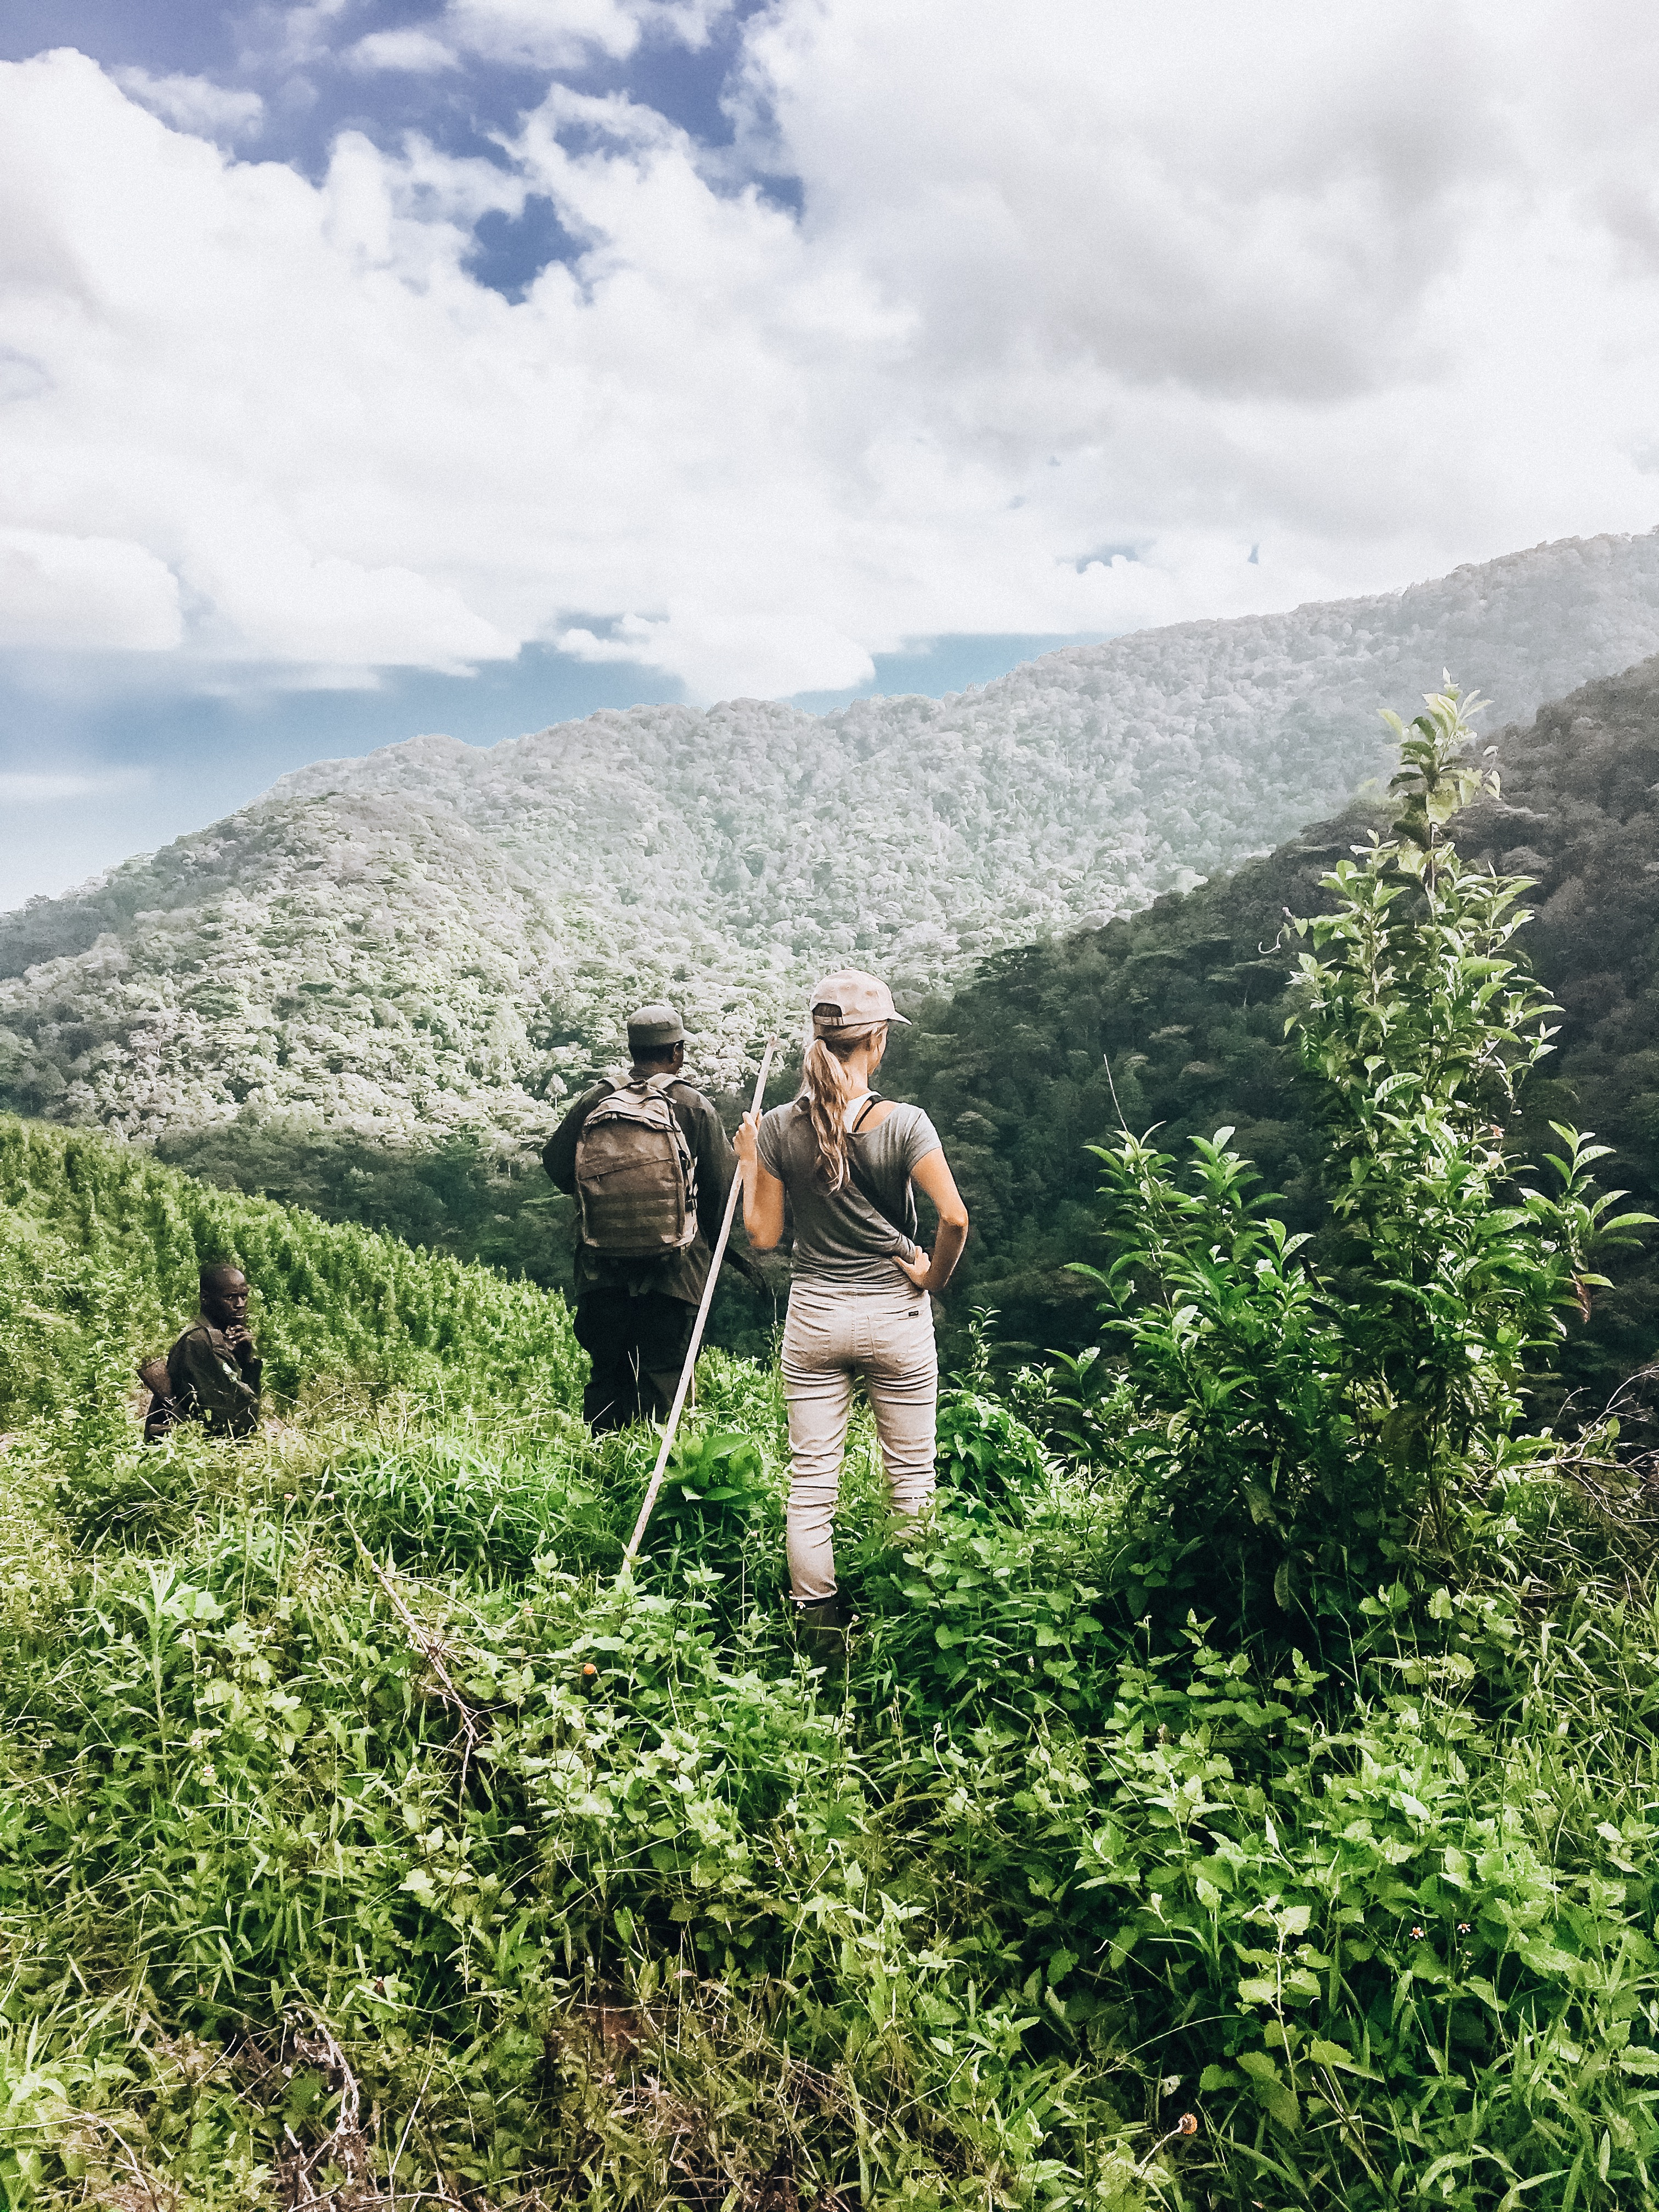 Author with guide in Uganda's Bwindi Impenetrable Forest